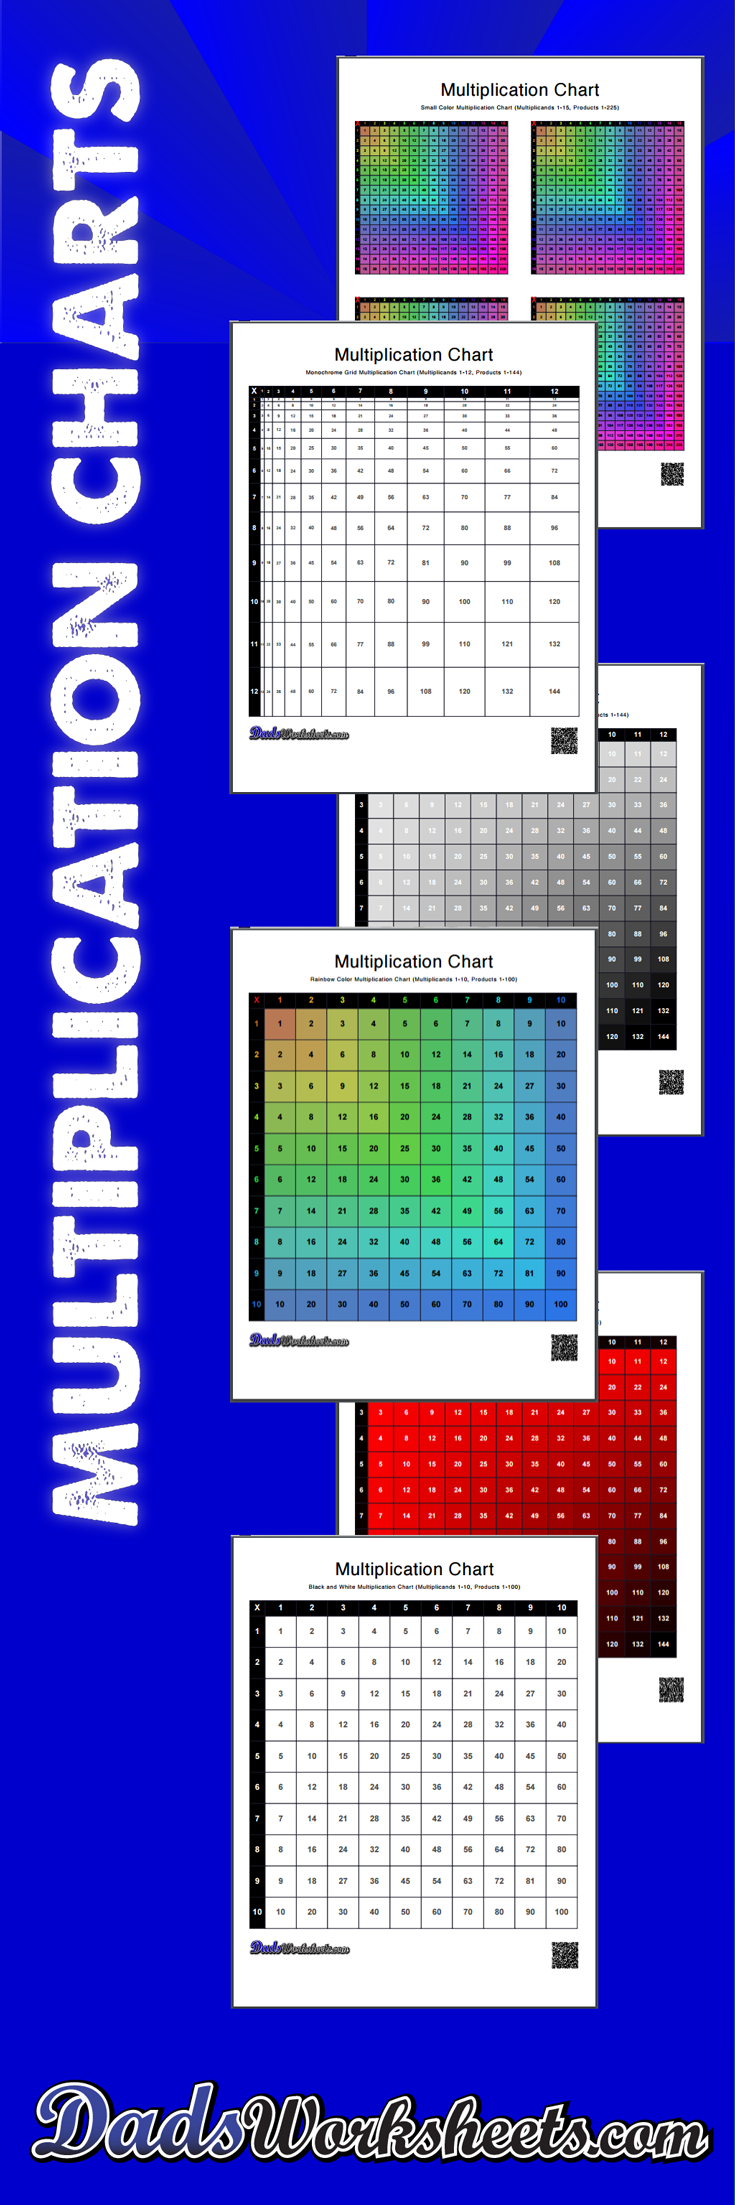 Multiplication Charts: 59 High Resolution Printable Pdfs, 1